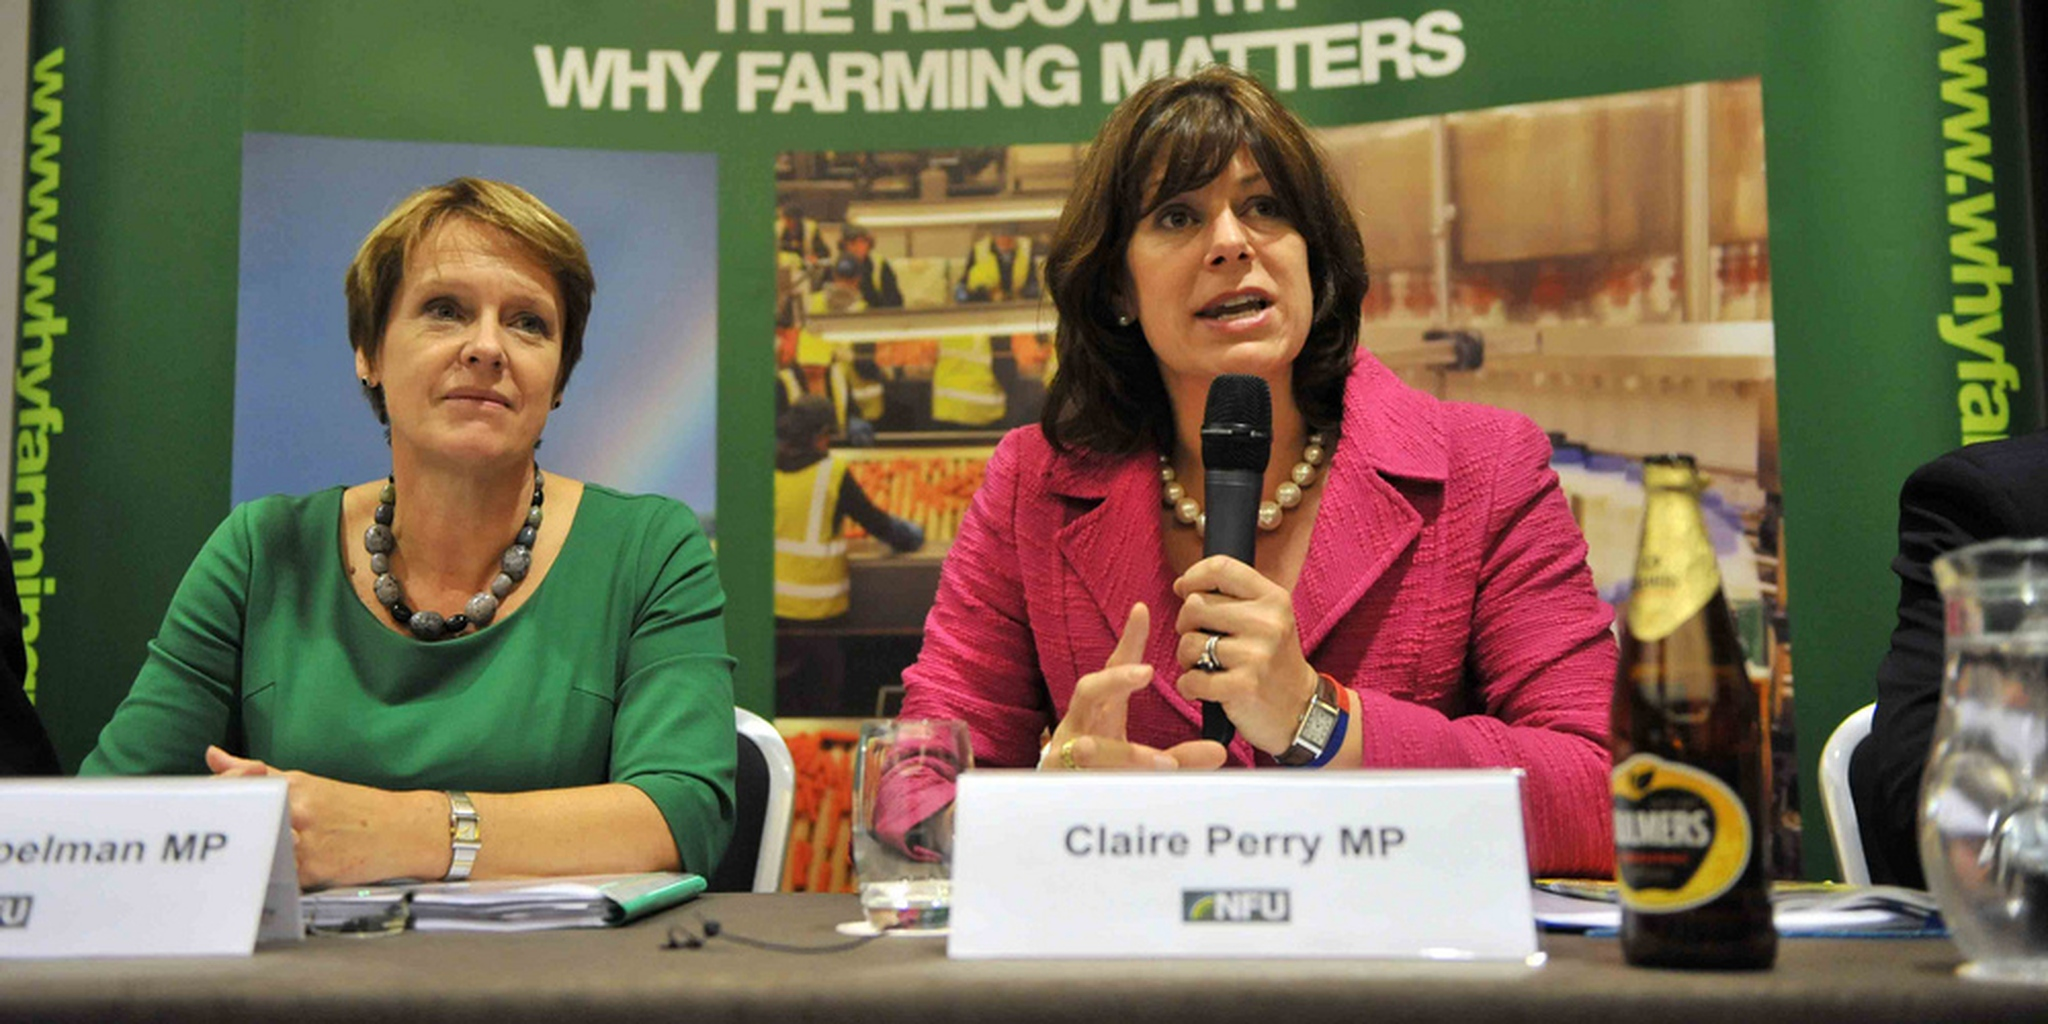 NFU fringe event - Caroline Spelman and Claire Perry   Flickr - Photo Sharing!